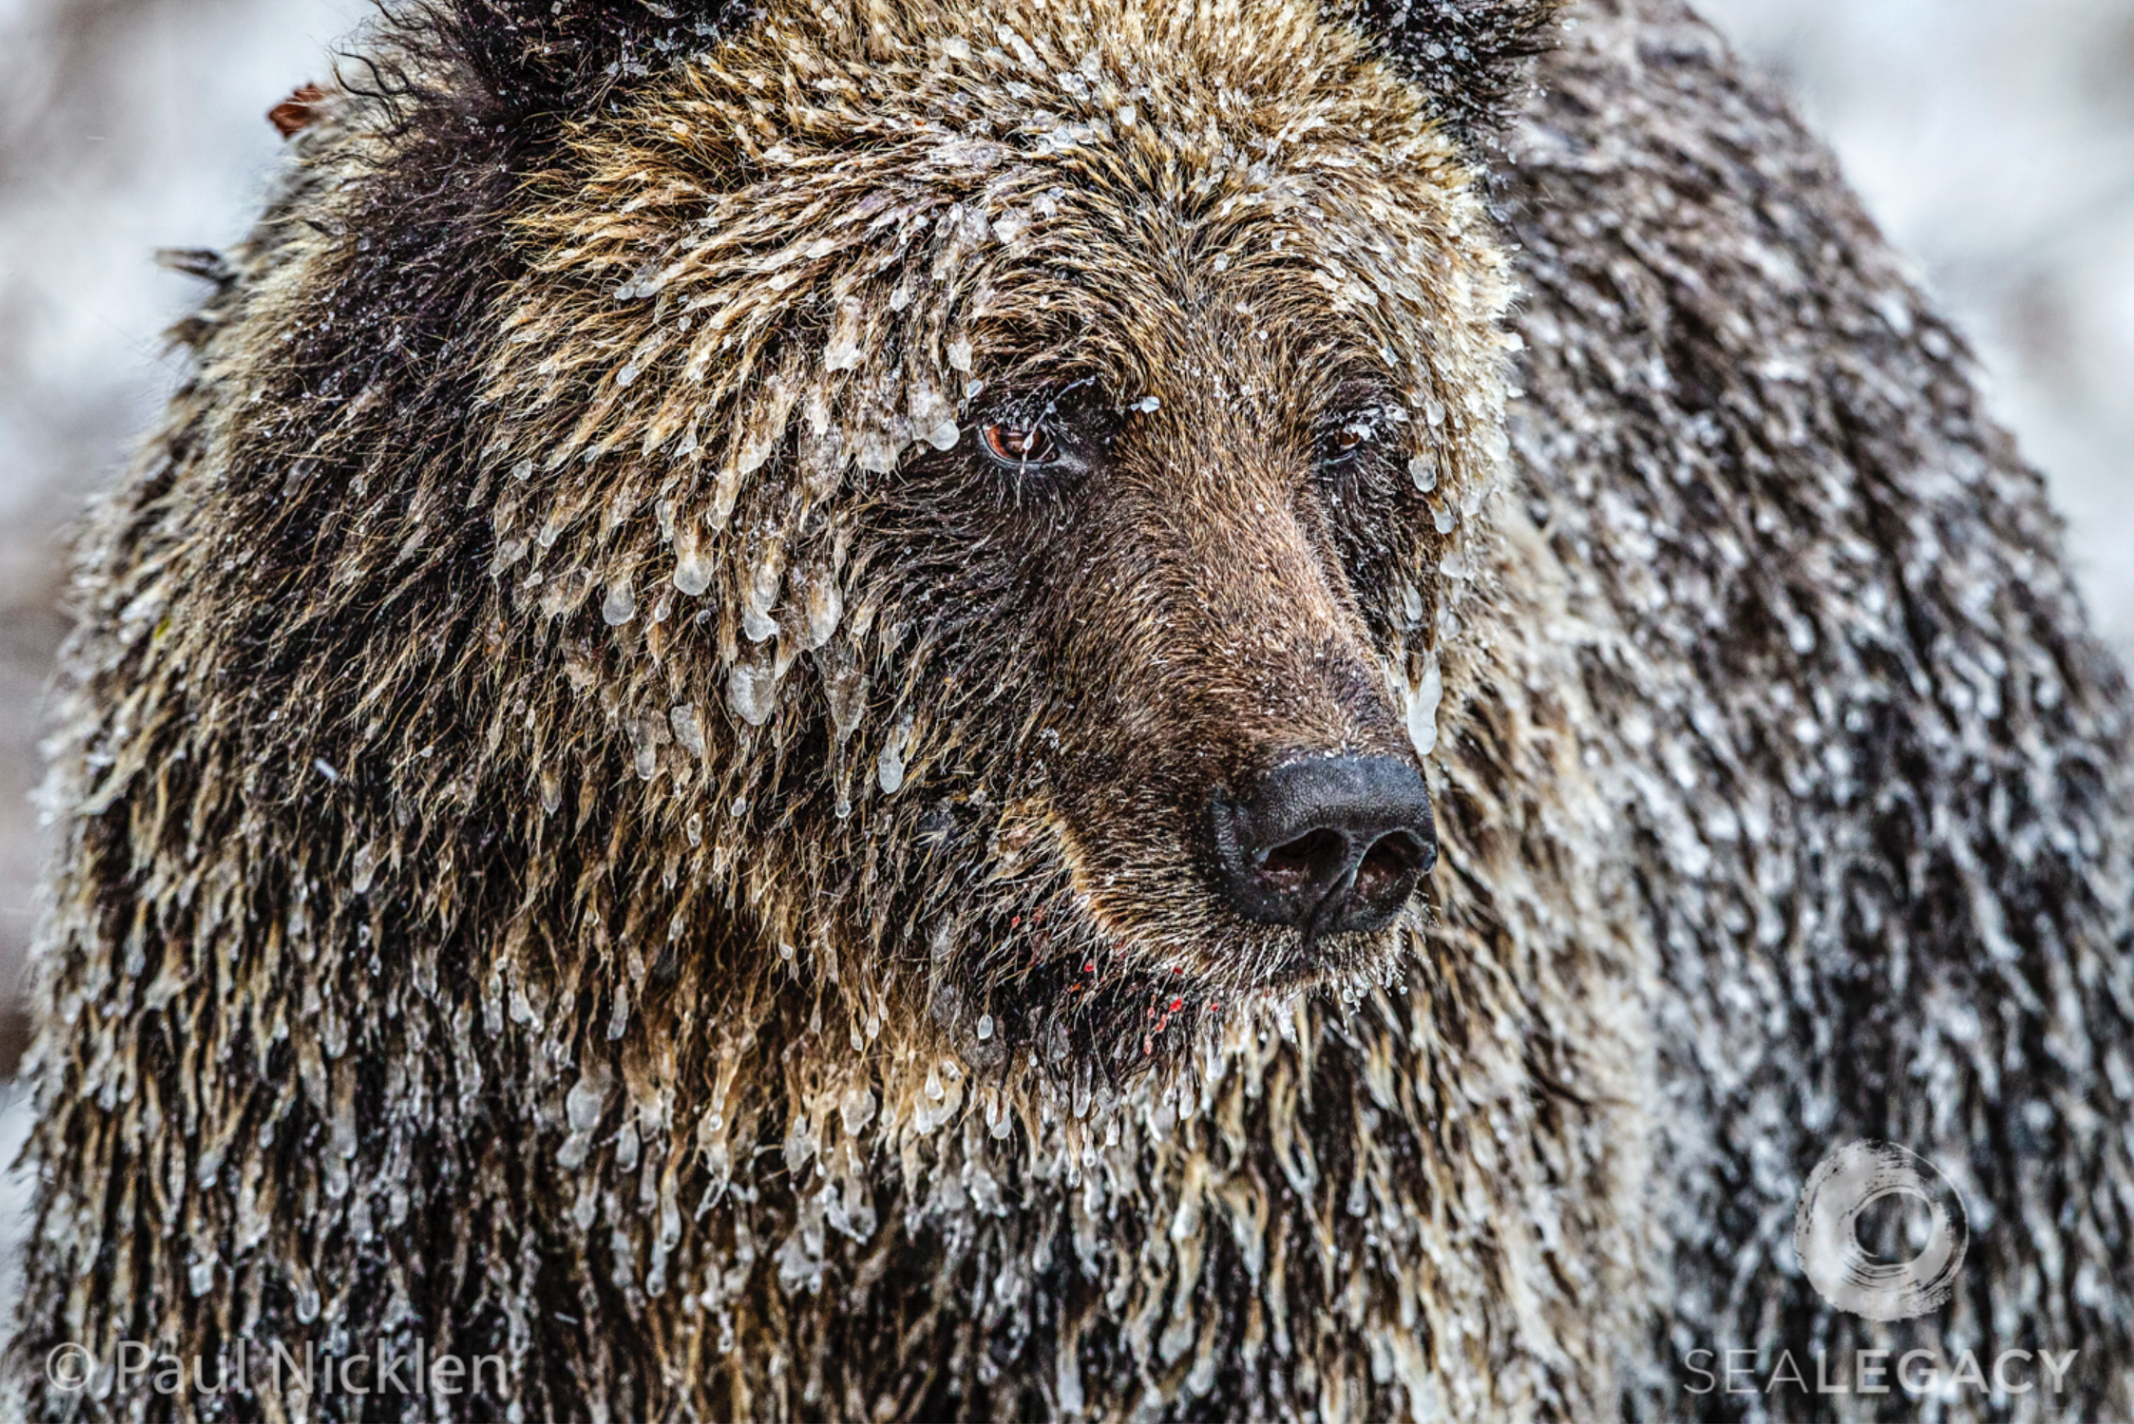 Paul Nicklen, Frosty Bear  Archival Pigment Print, 20x30 in.